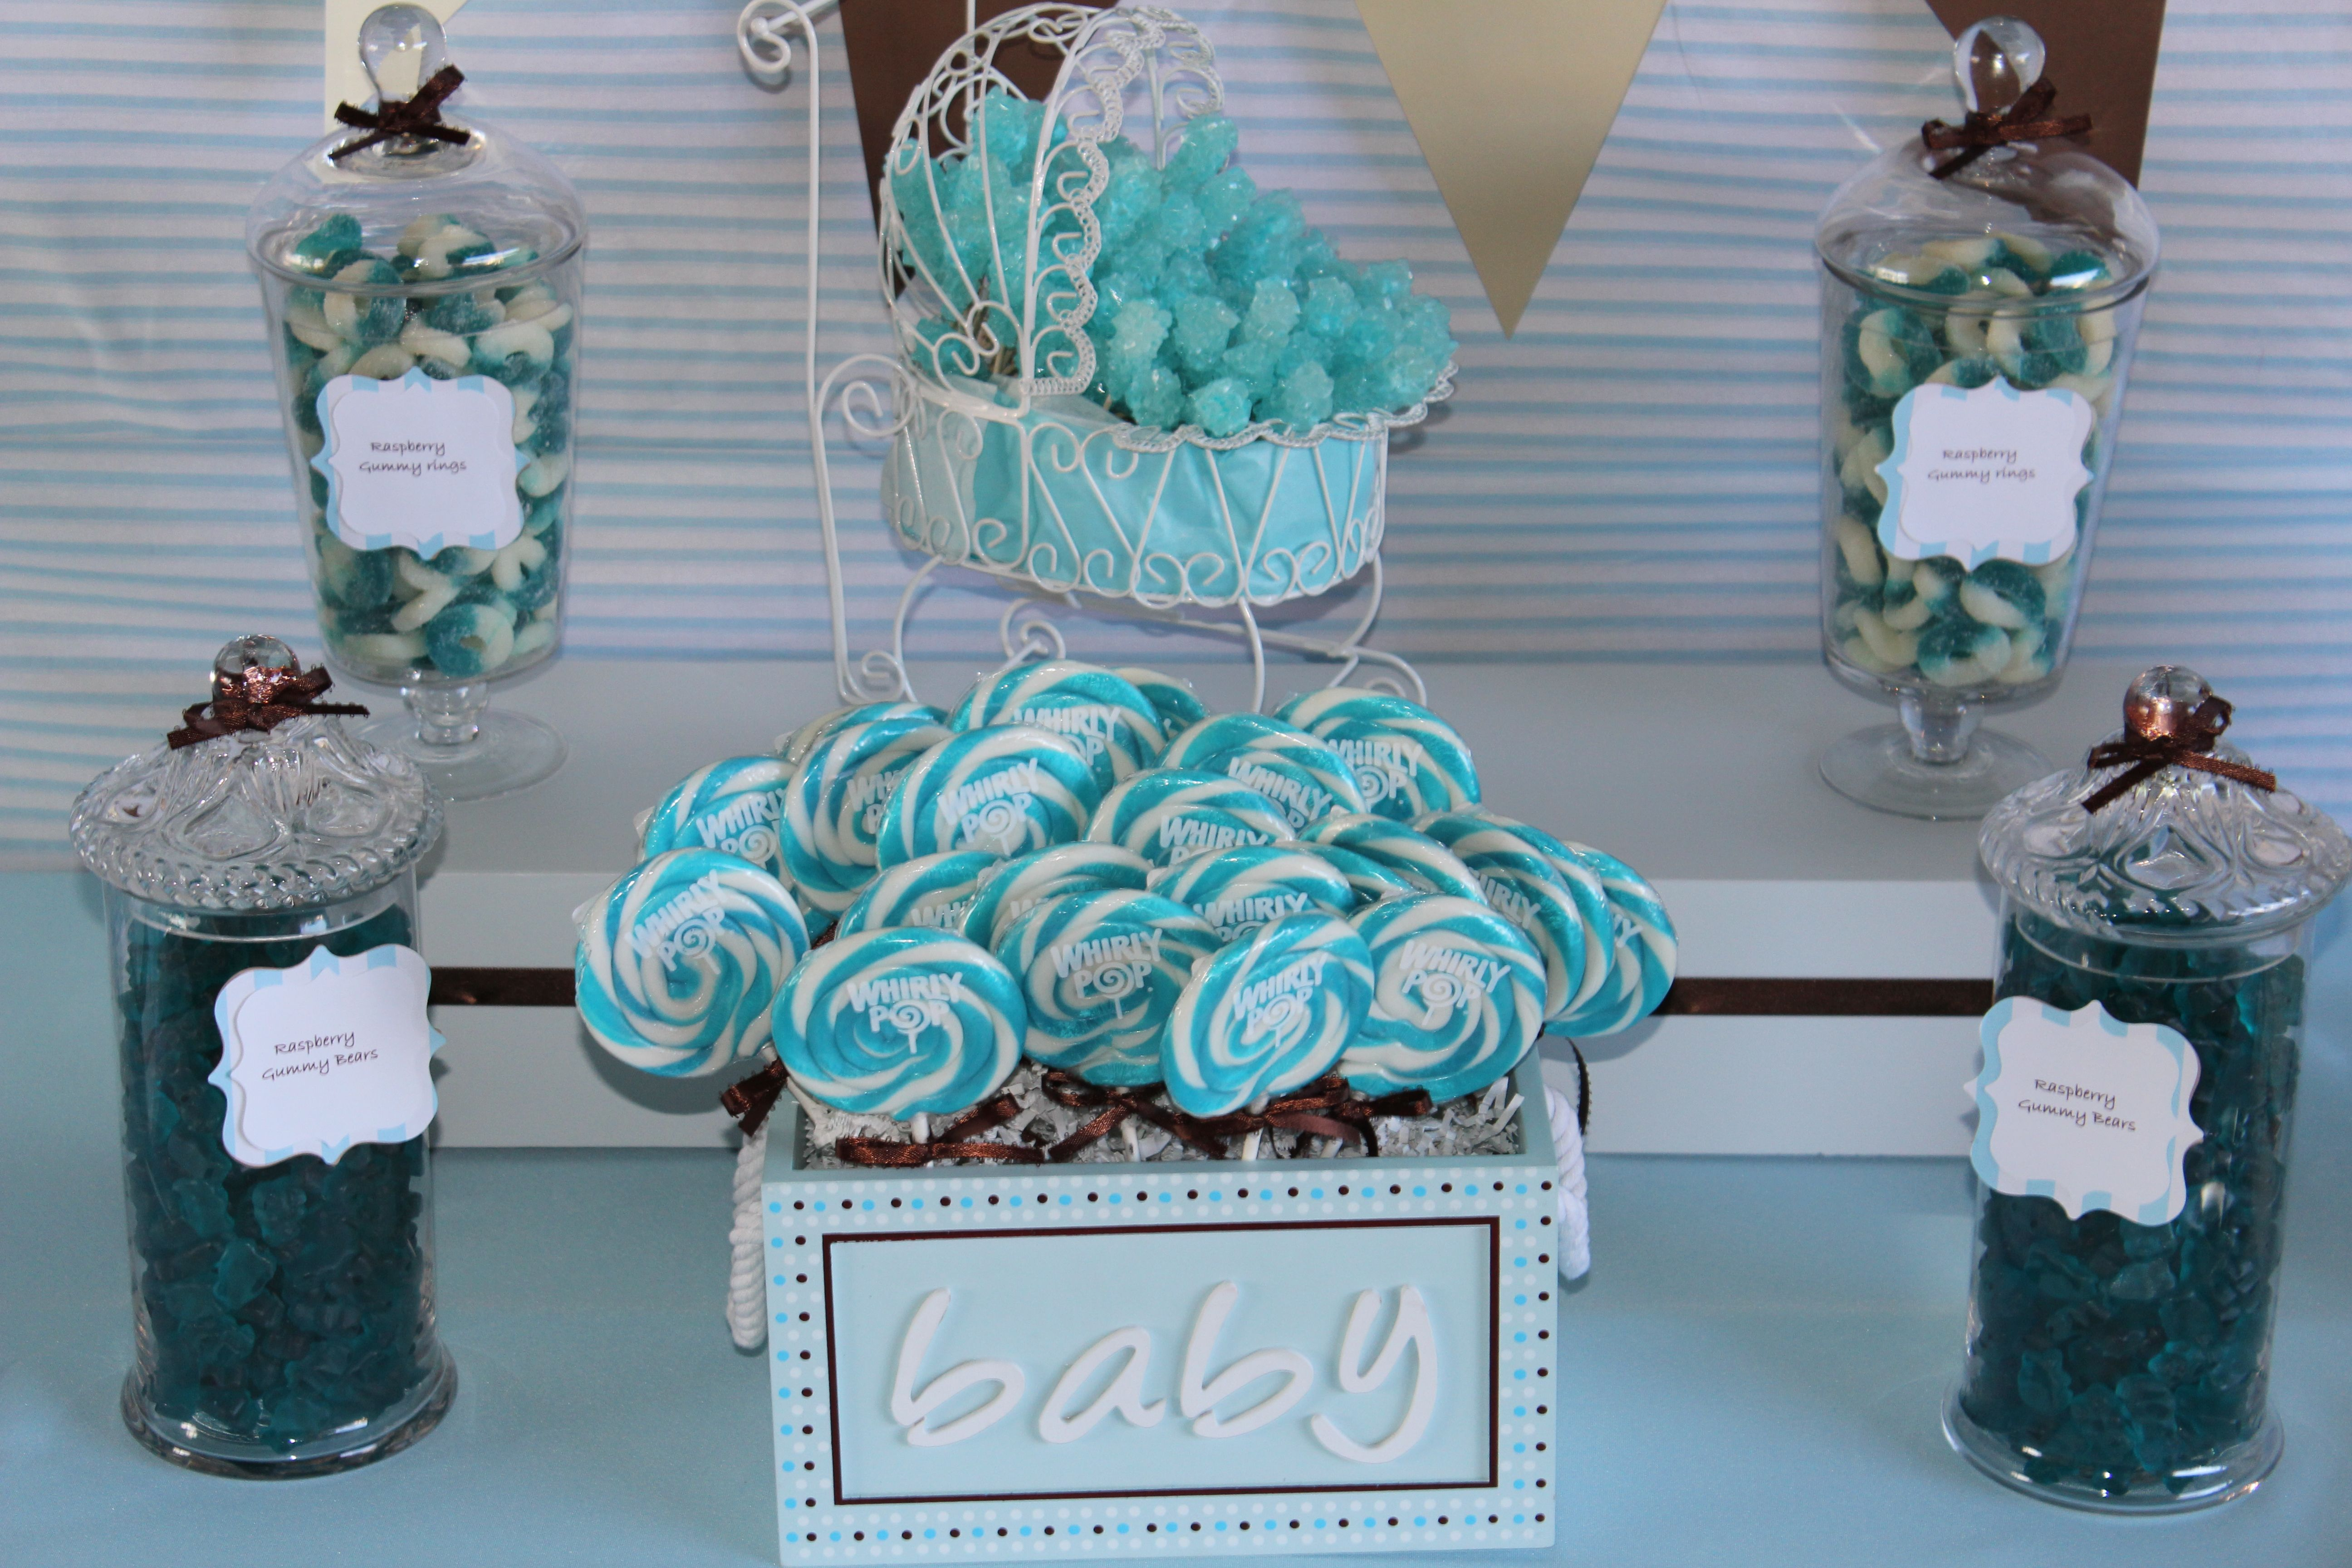 Baby Shower Ideas Sweet Love Candy Buffet Company Baby Shower Candy Bar Candy Buffet Baby Shower Baby Shower Candy